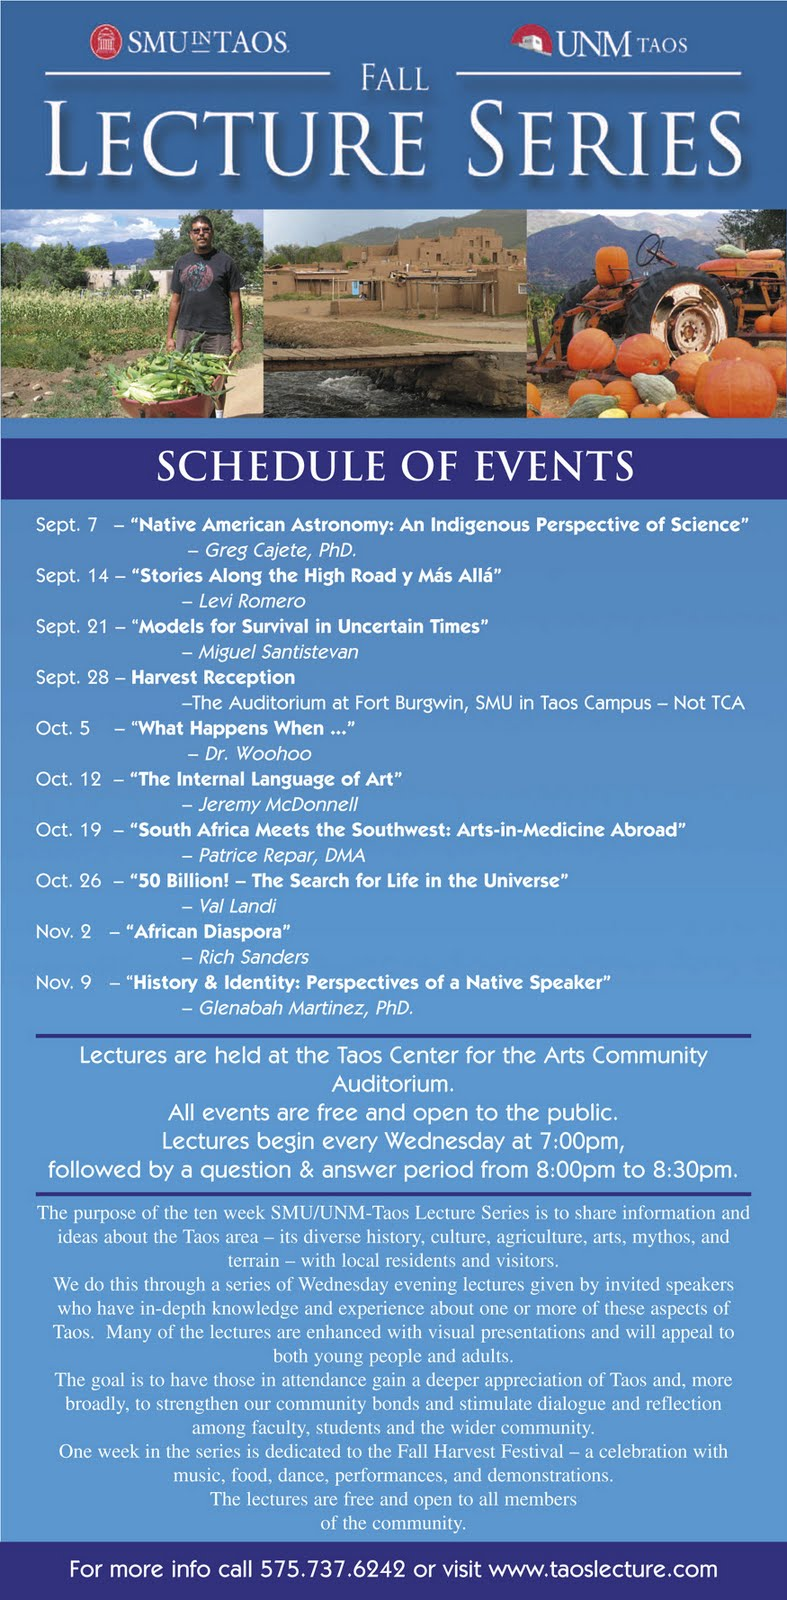 UNM Taos News & Information: 3rd annual Fall lecture Series